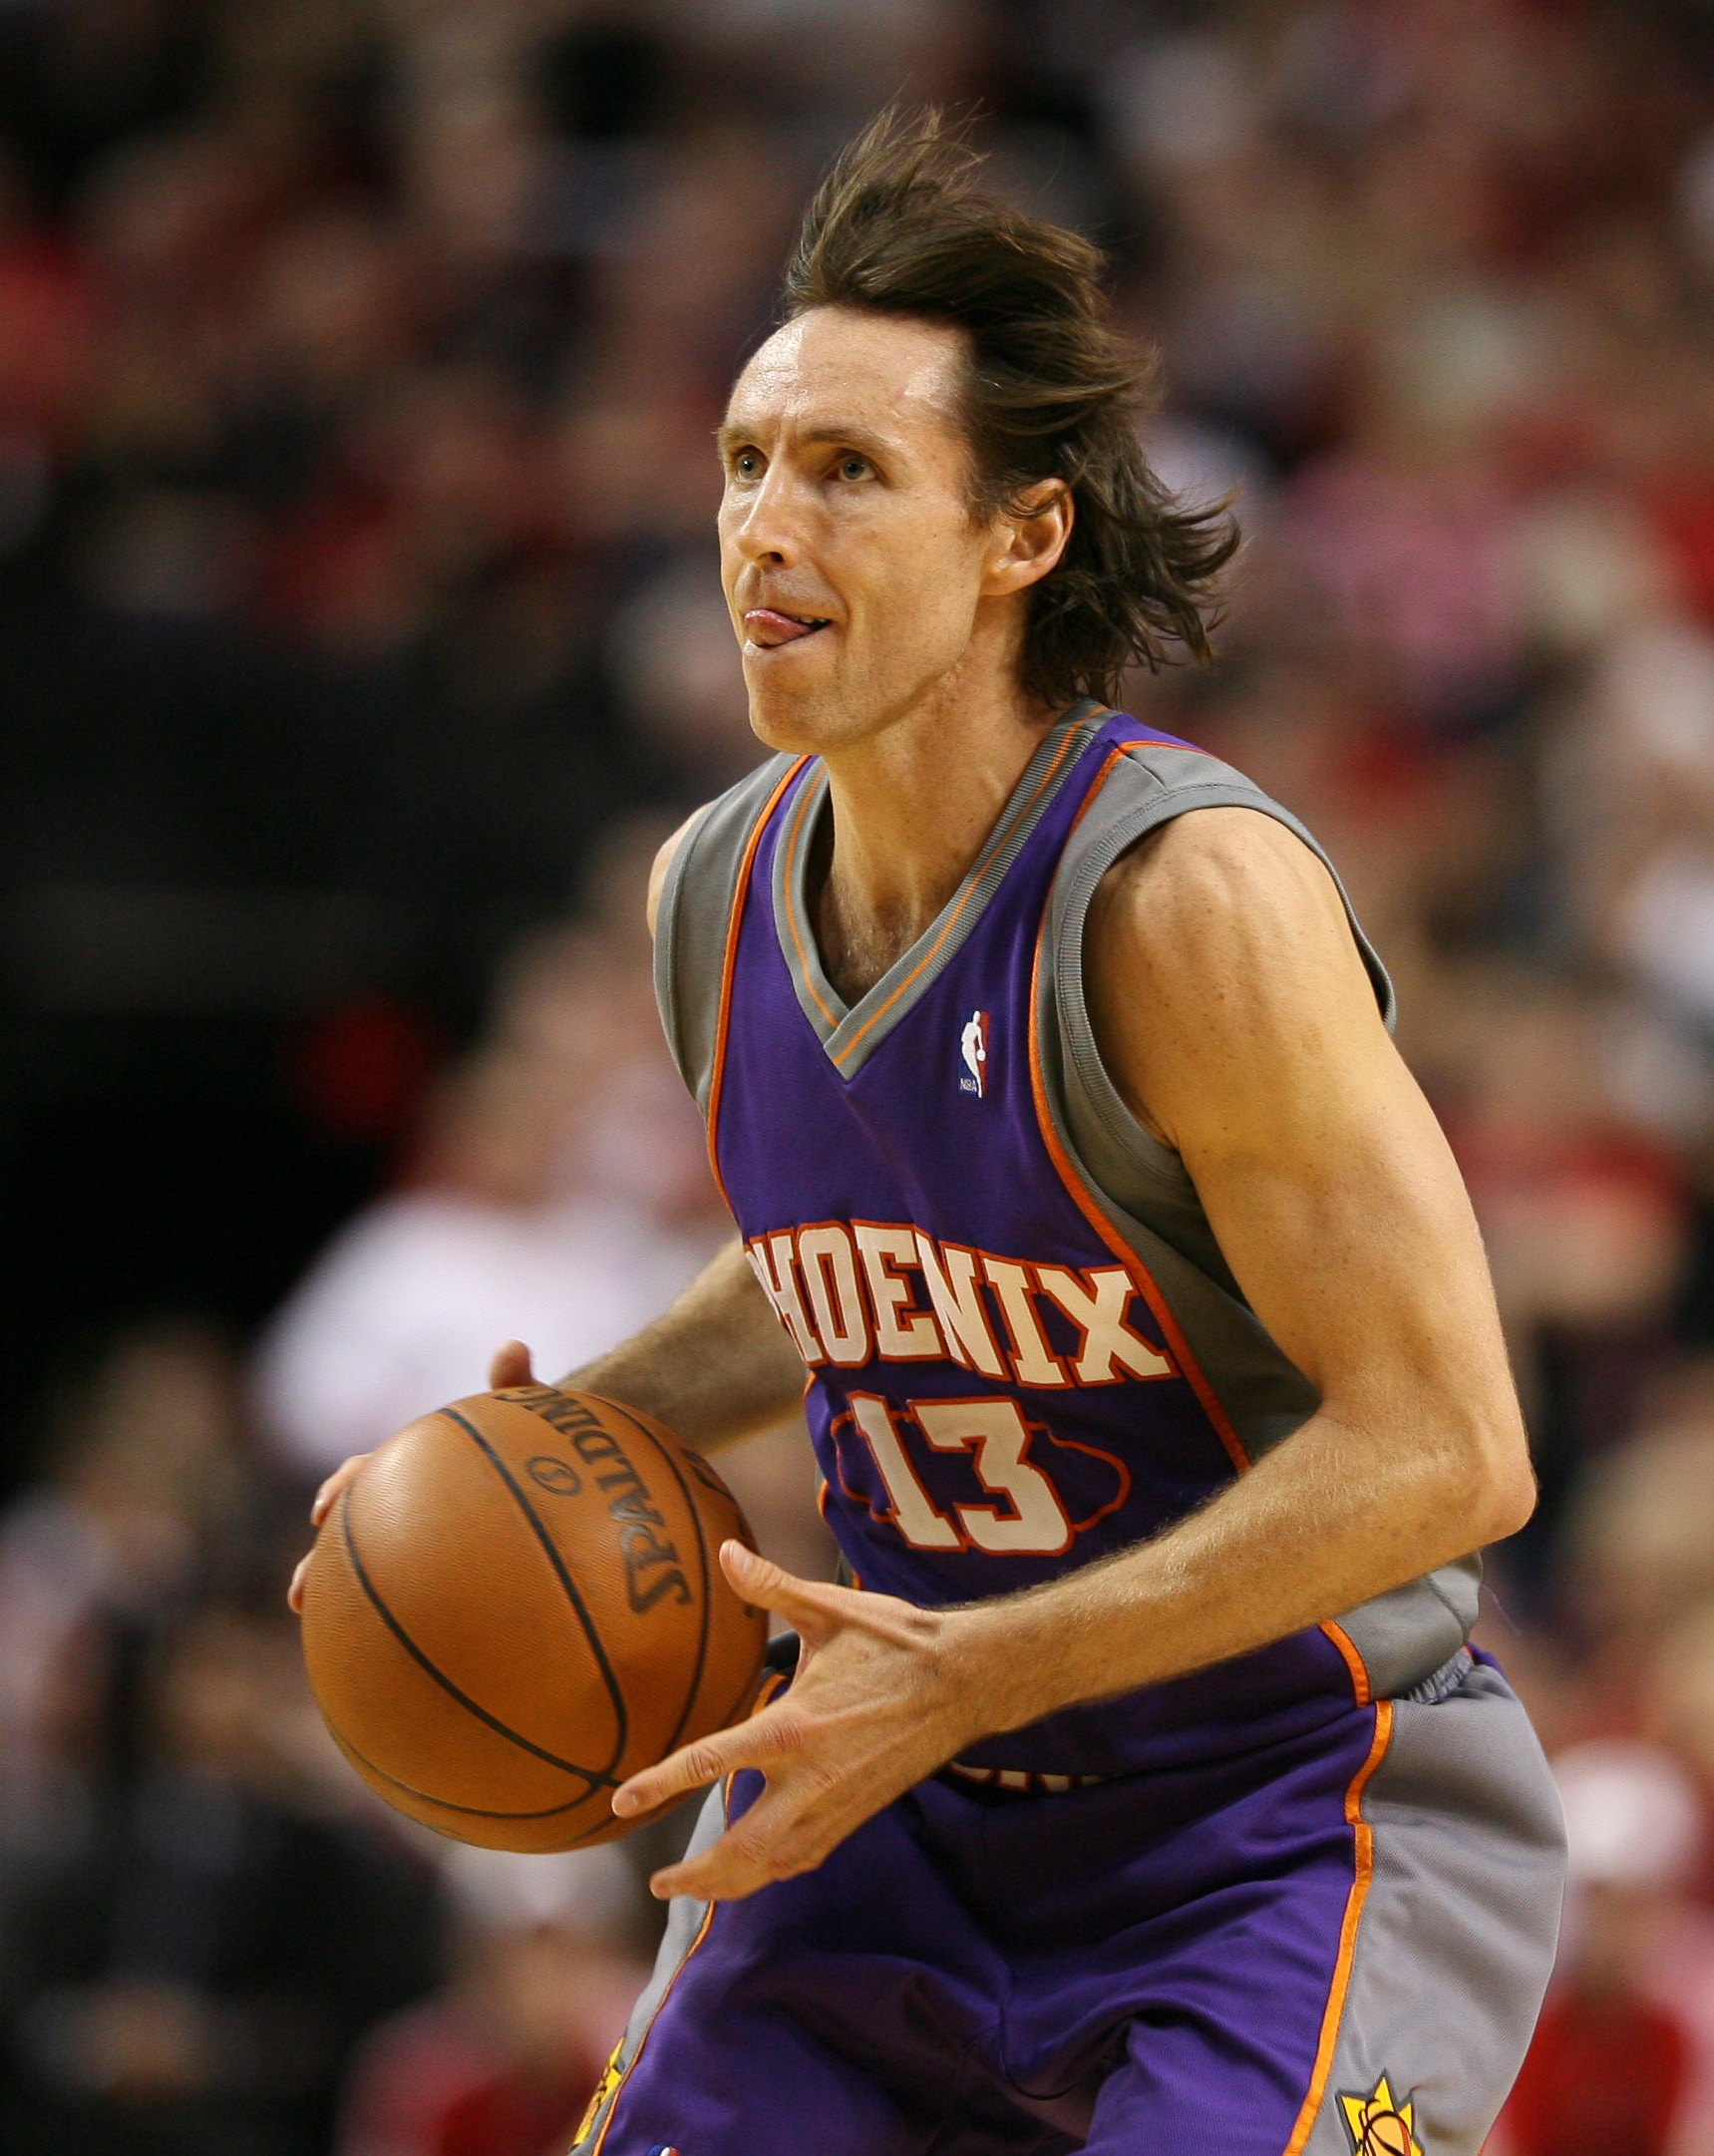 PORTLAND, OR - APRIL 29:  Steve Nash #13 of the Phoenix Suns in action against the Portland Trail Blazers during Game Six of the Western Conference Quarterfinals of the NBA Playoffs on April 29, 2010 at the Rose Garden in Portland, Oregon. The Suns defeat